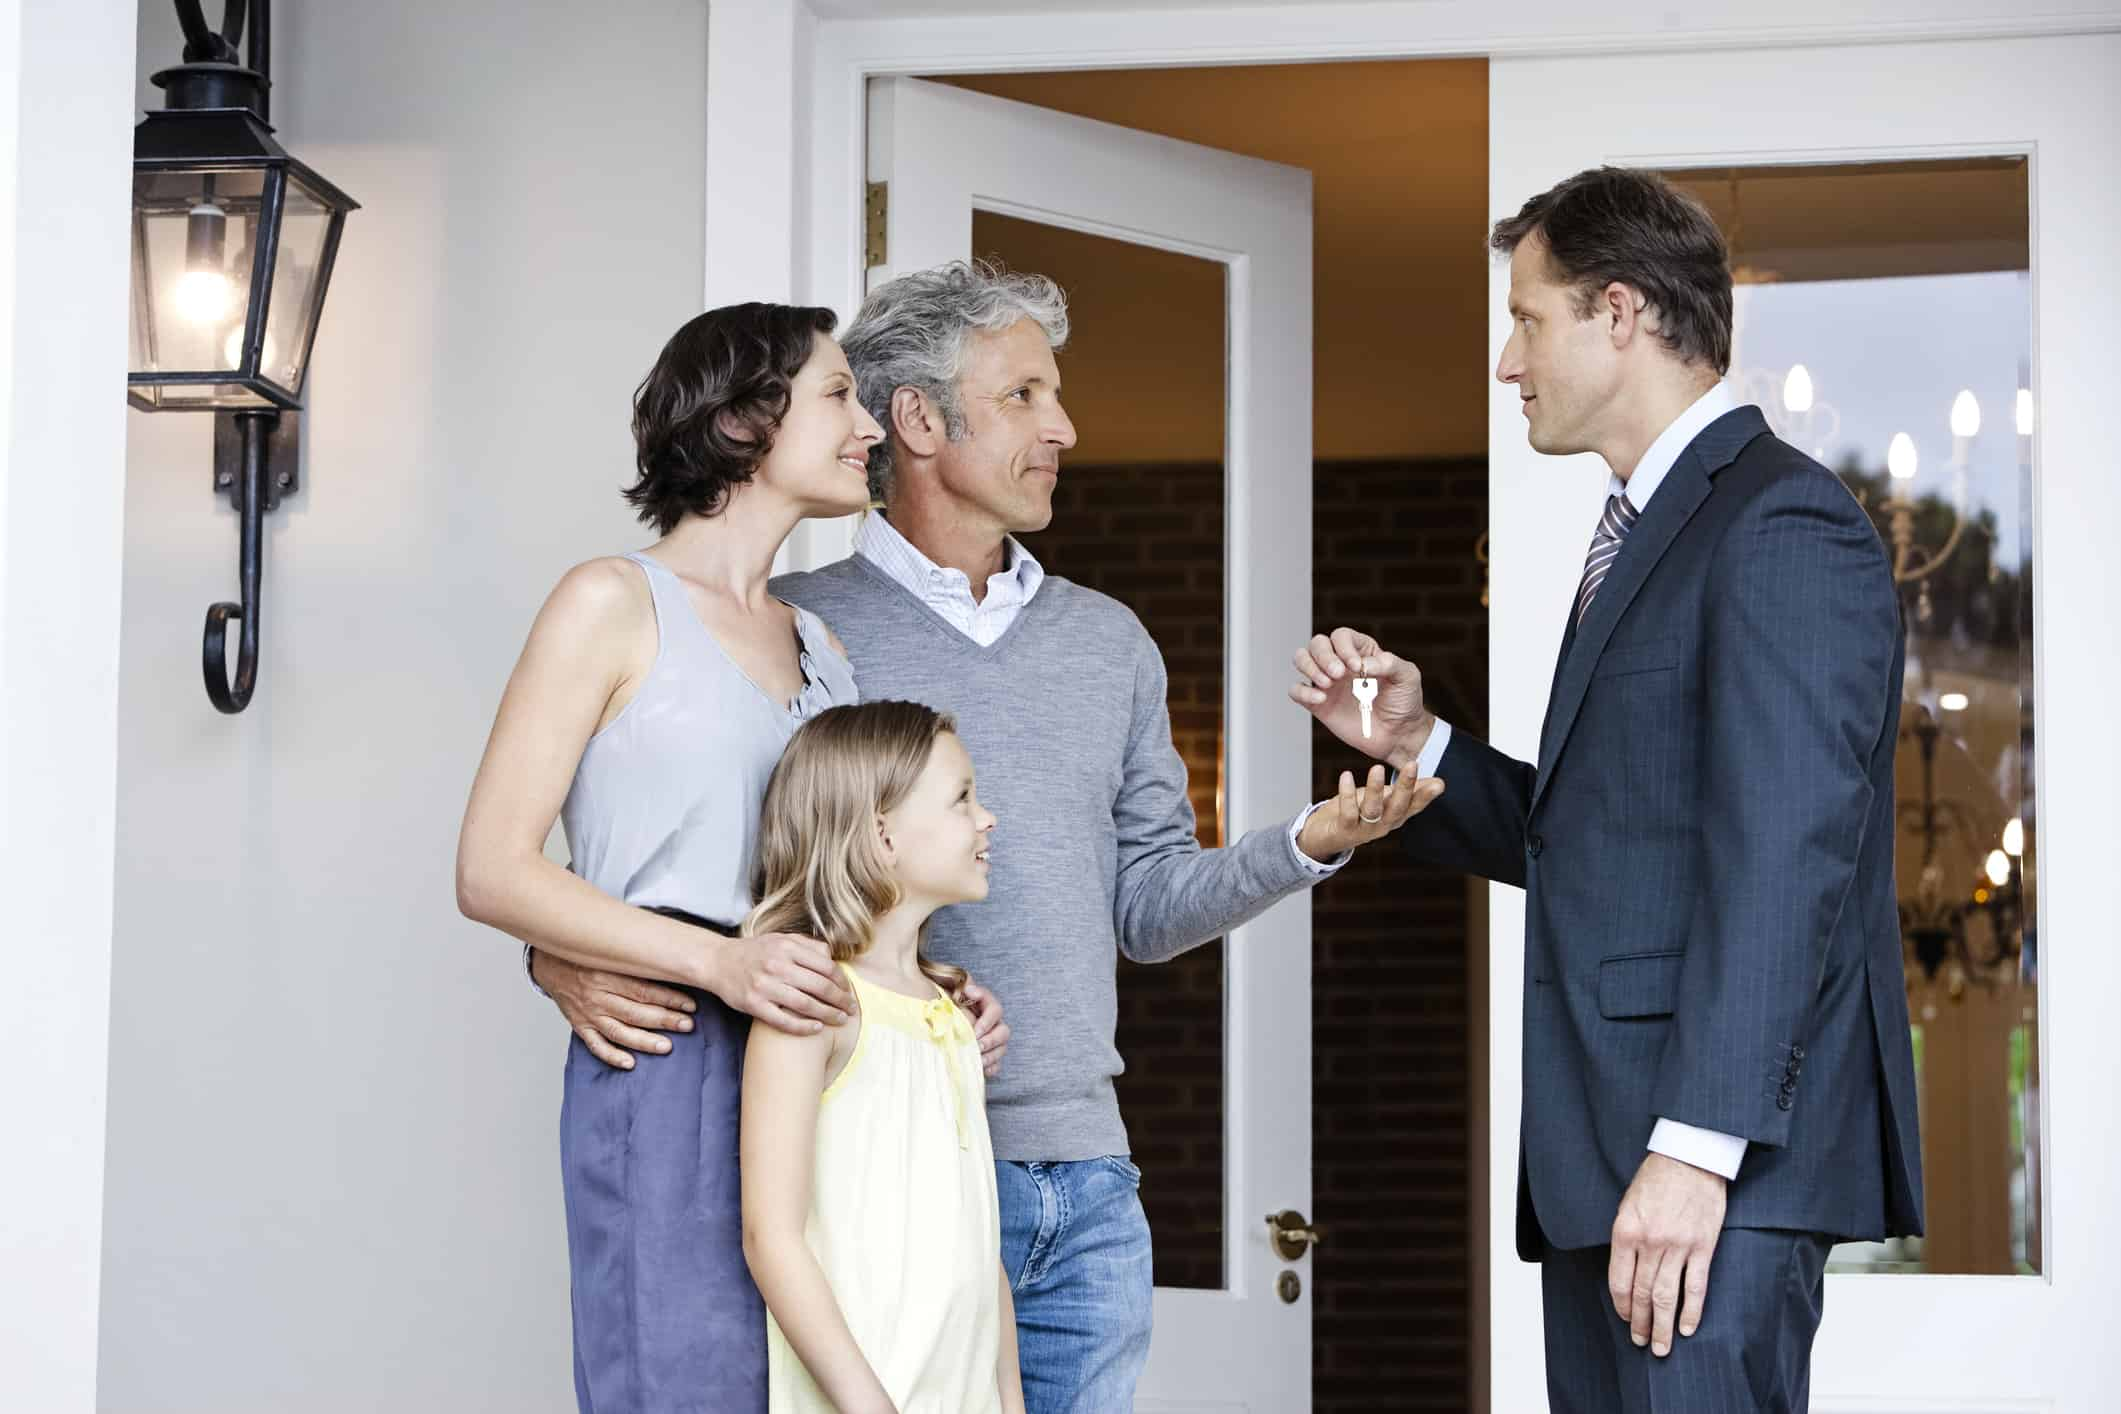 Find the Best Home Equity Loans in 2021